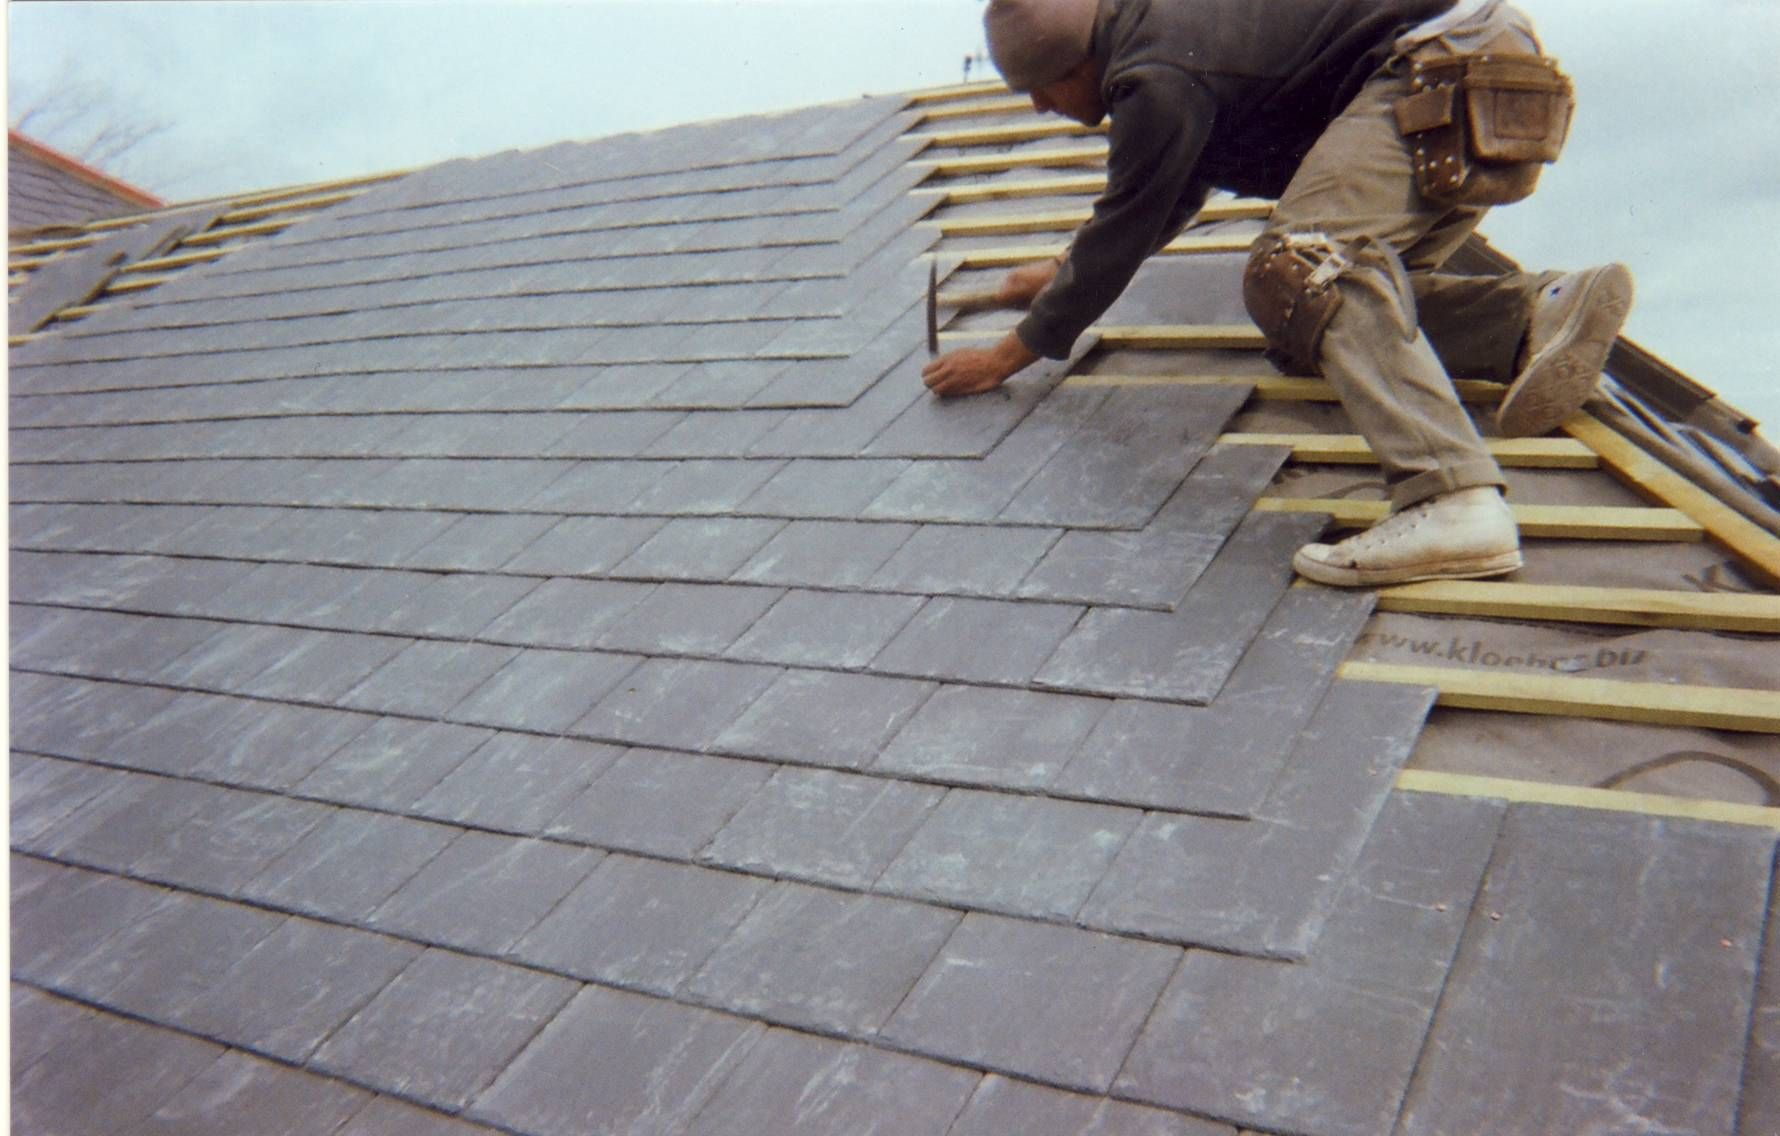 Replace shingles on roof - Replace Shingles On Roof Here Are Some Roofing Tips That Can Help You To Get